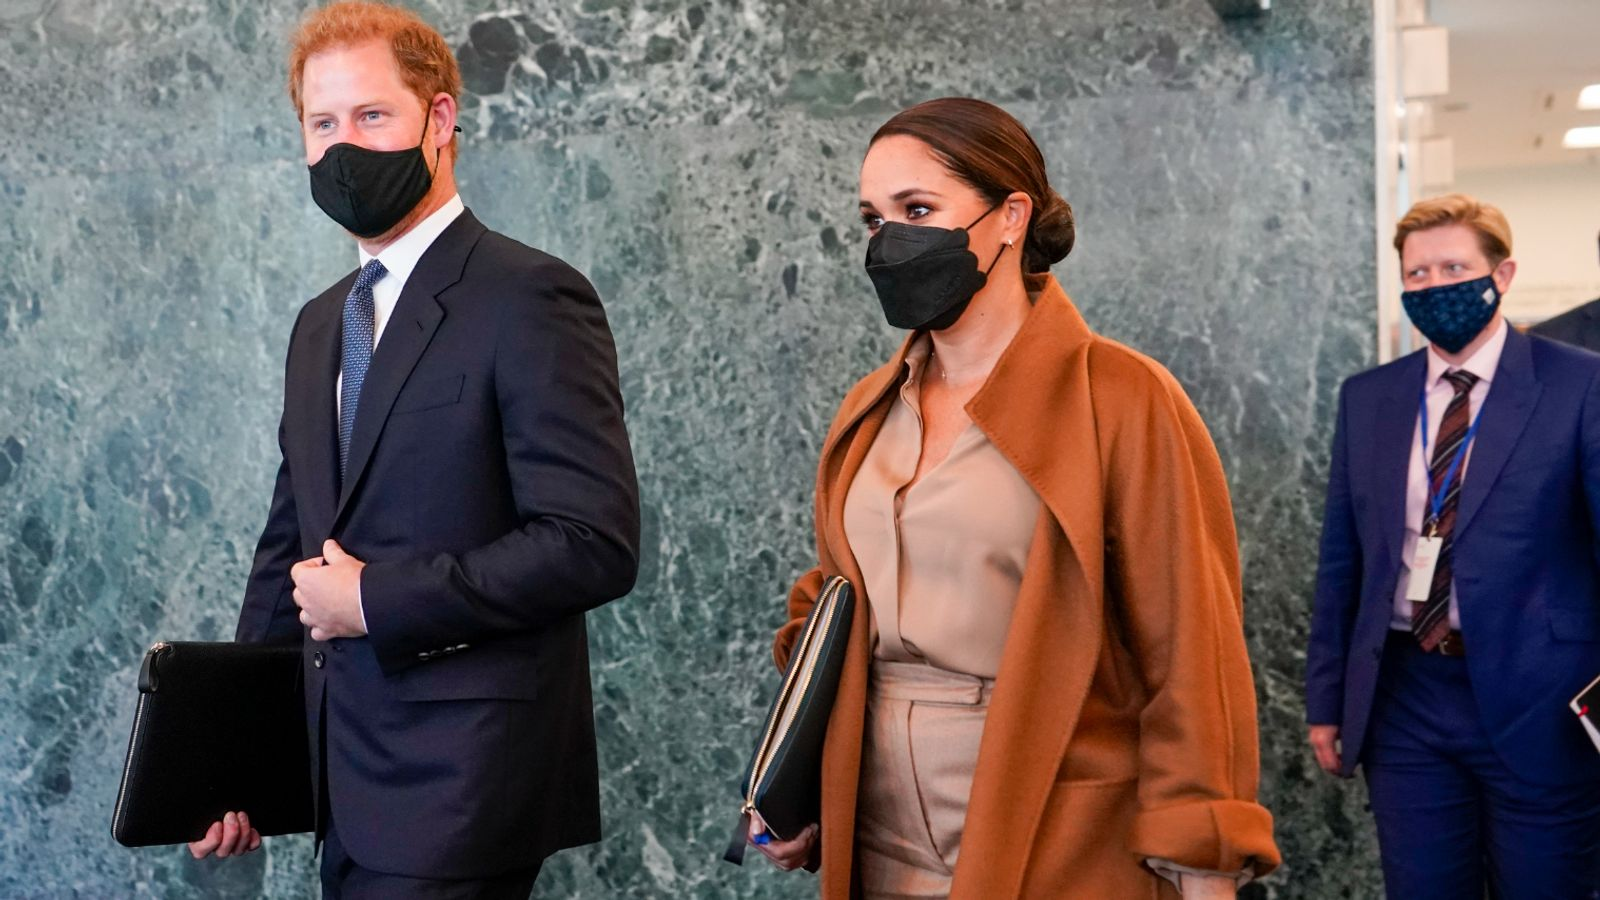 Prince Harry and Meghan meet top UN official amid world leaders' gathering in New York